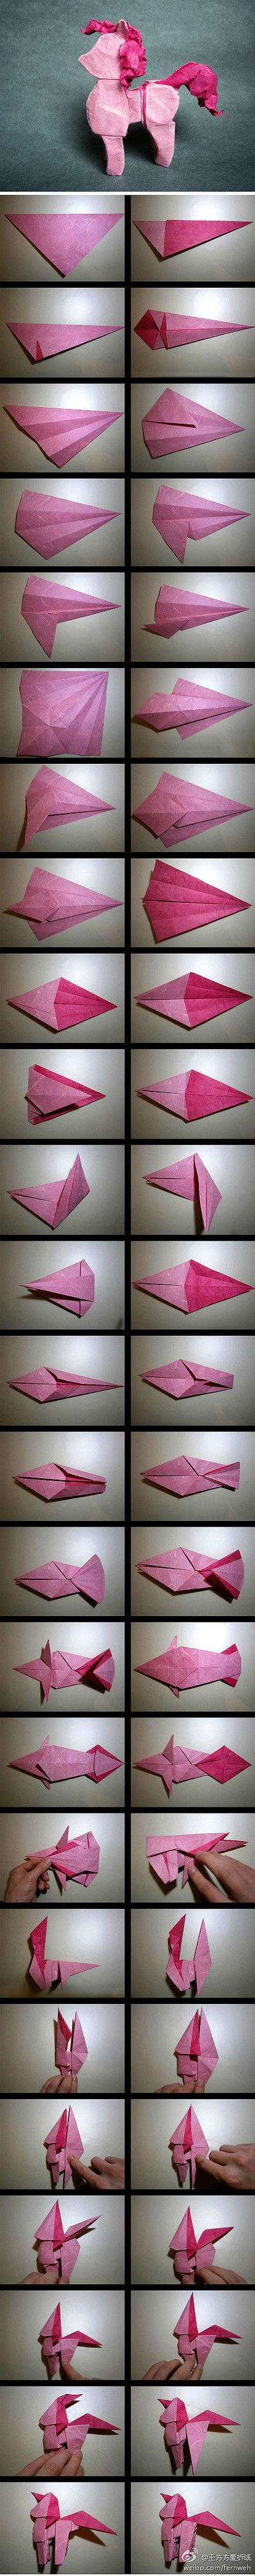 Origami Pony (can be made into a Unicorn, too)